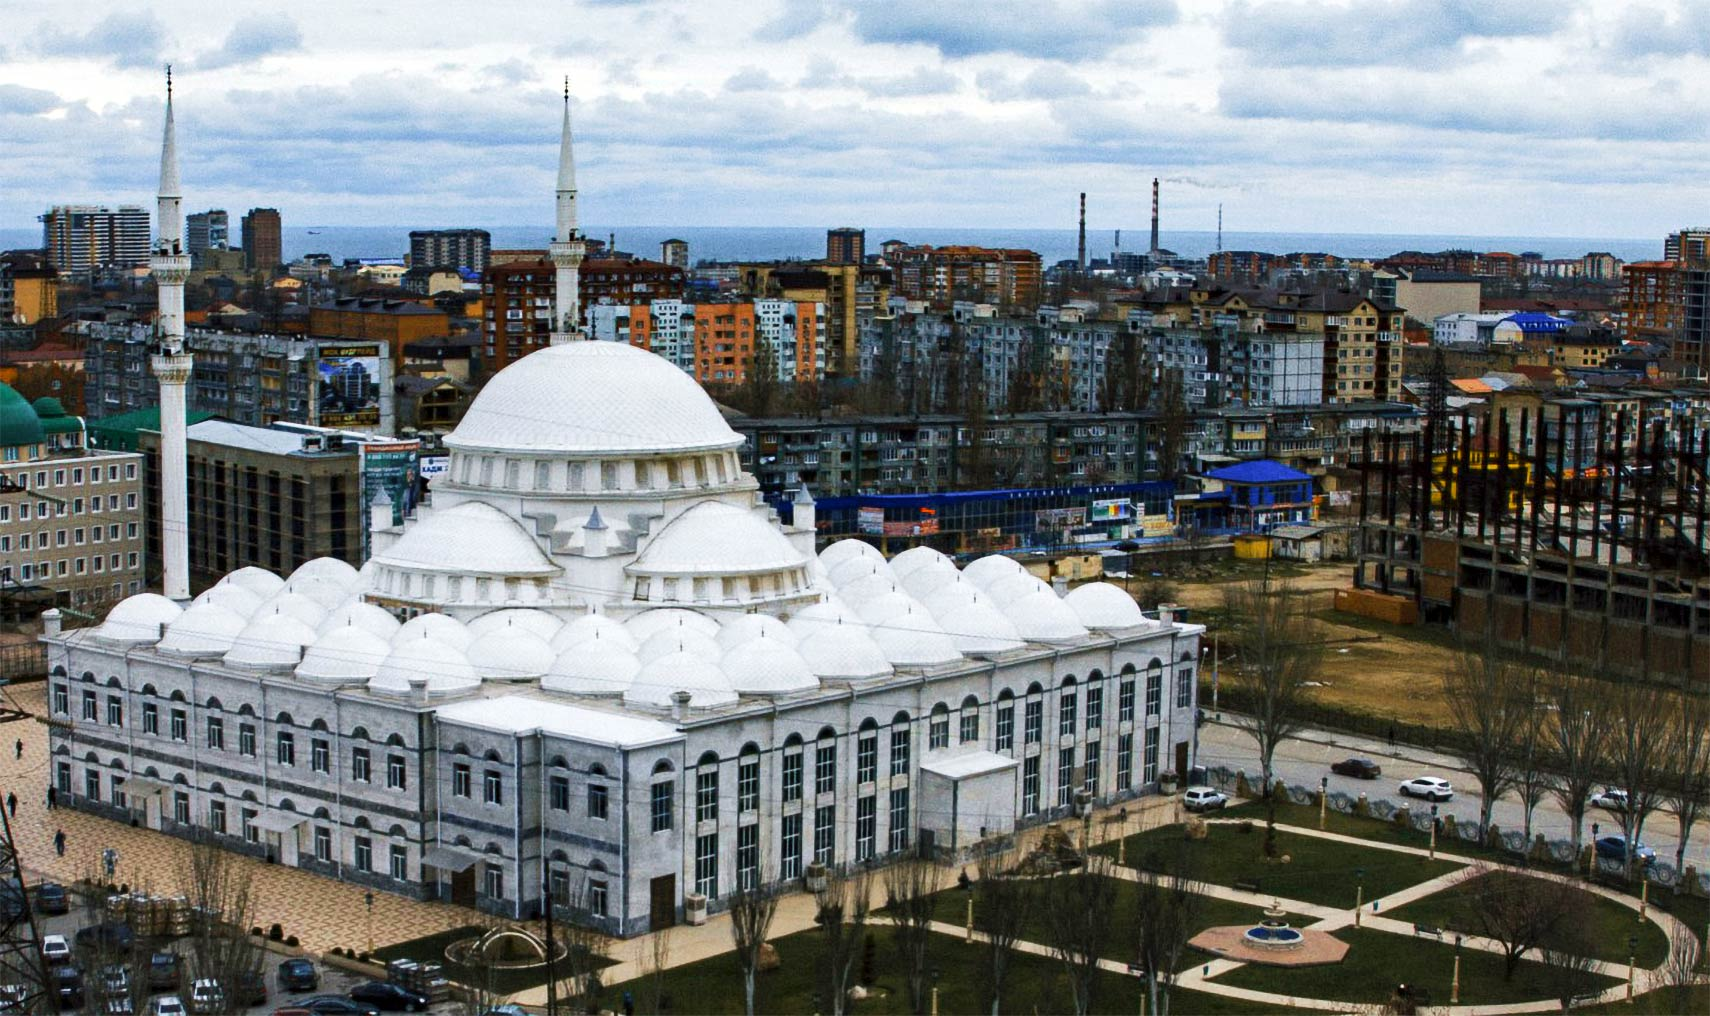 Grand Mosque of Makhachkala, Dagestan, Russia